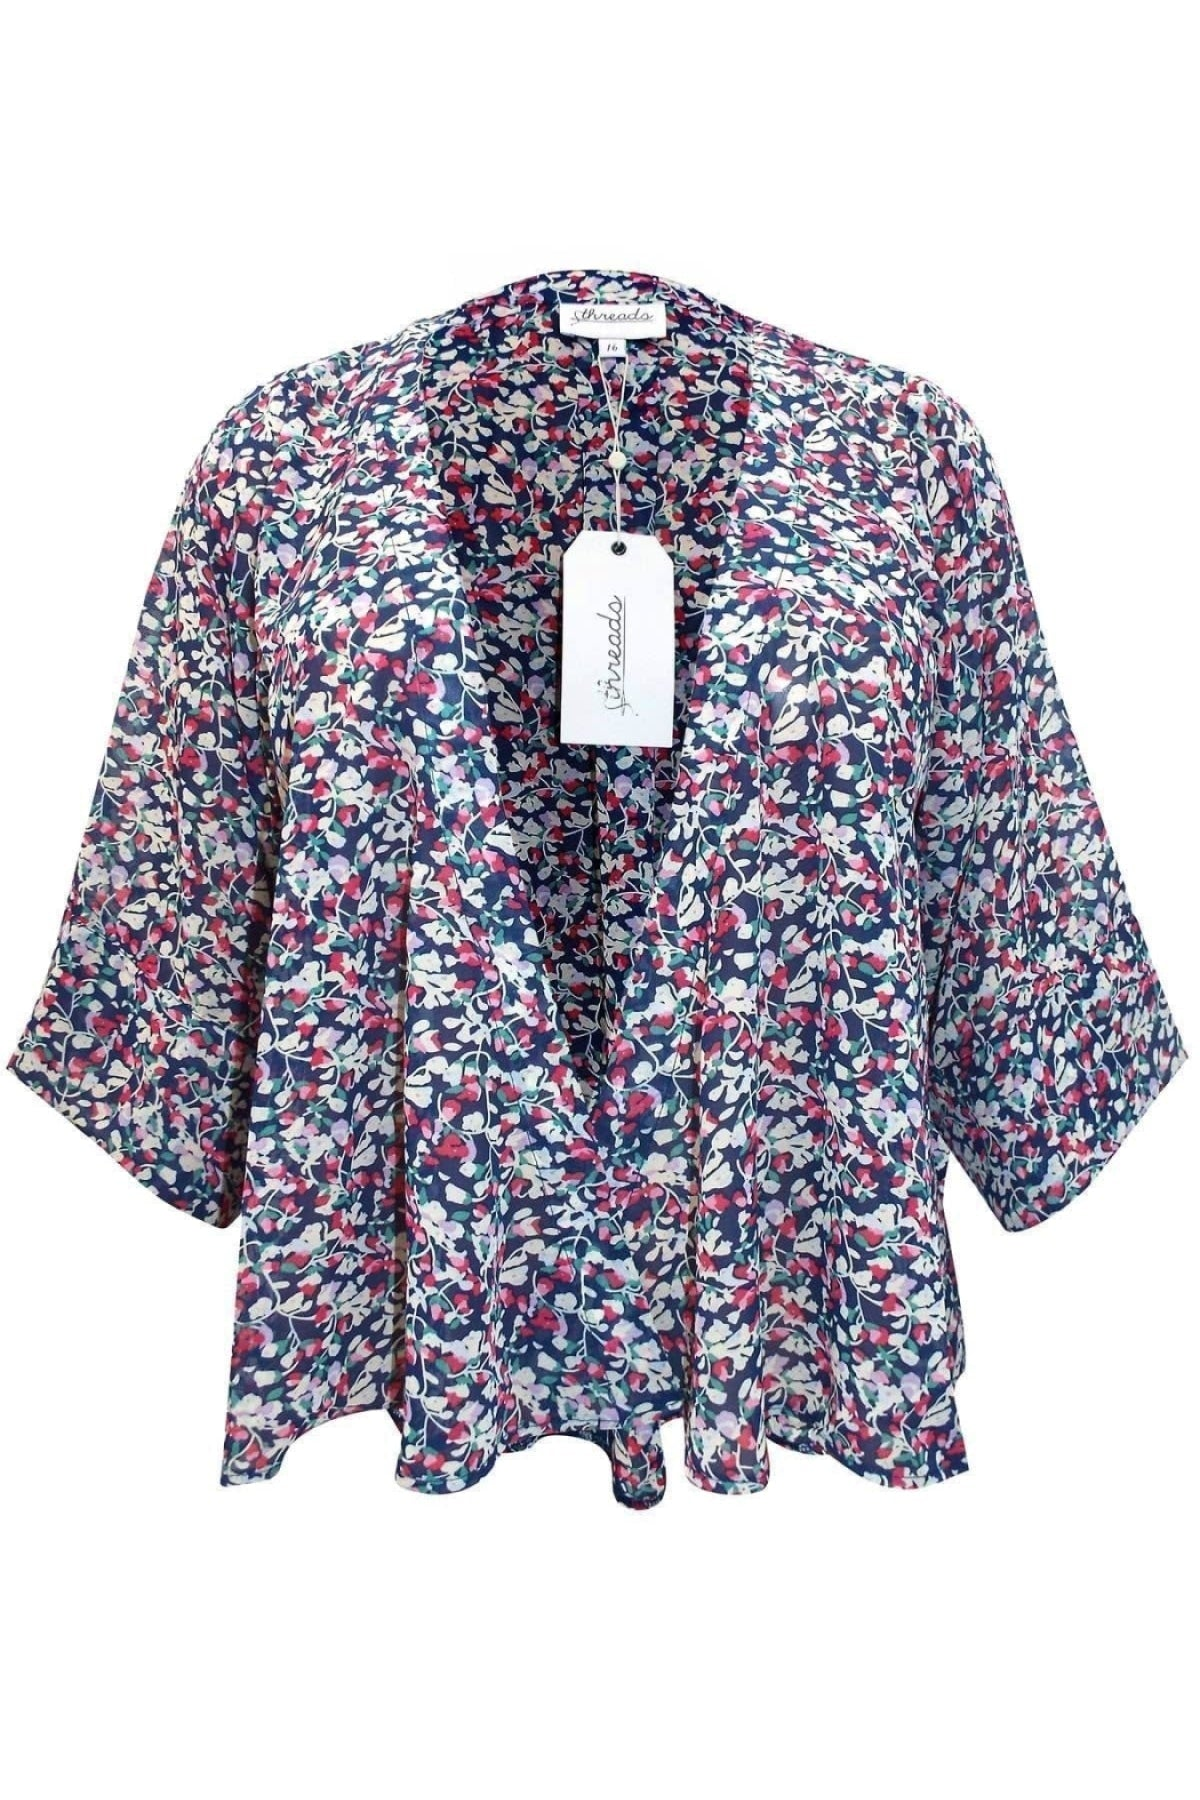 Threads Threads Pink Blue Floral Chiffon Kimono | Secret Label